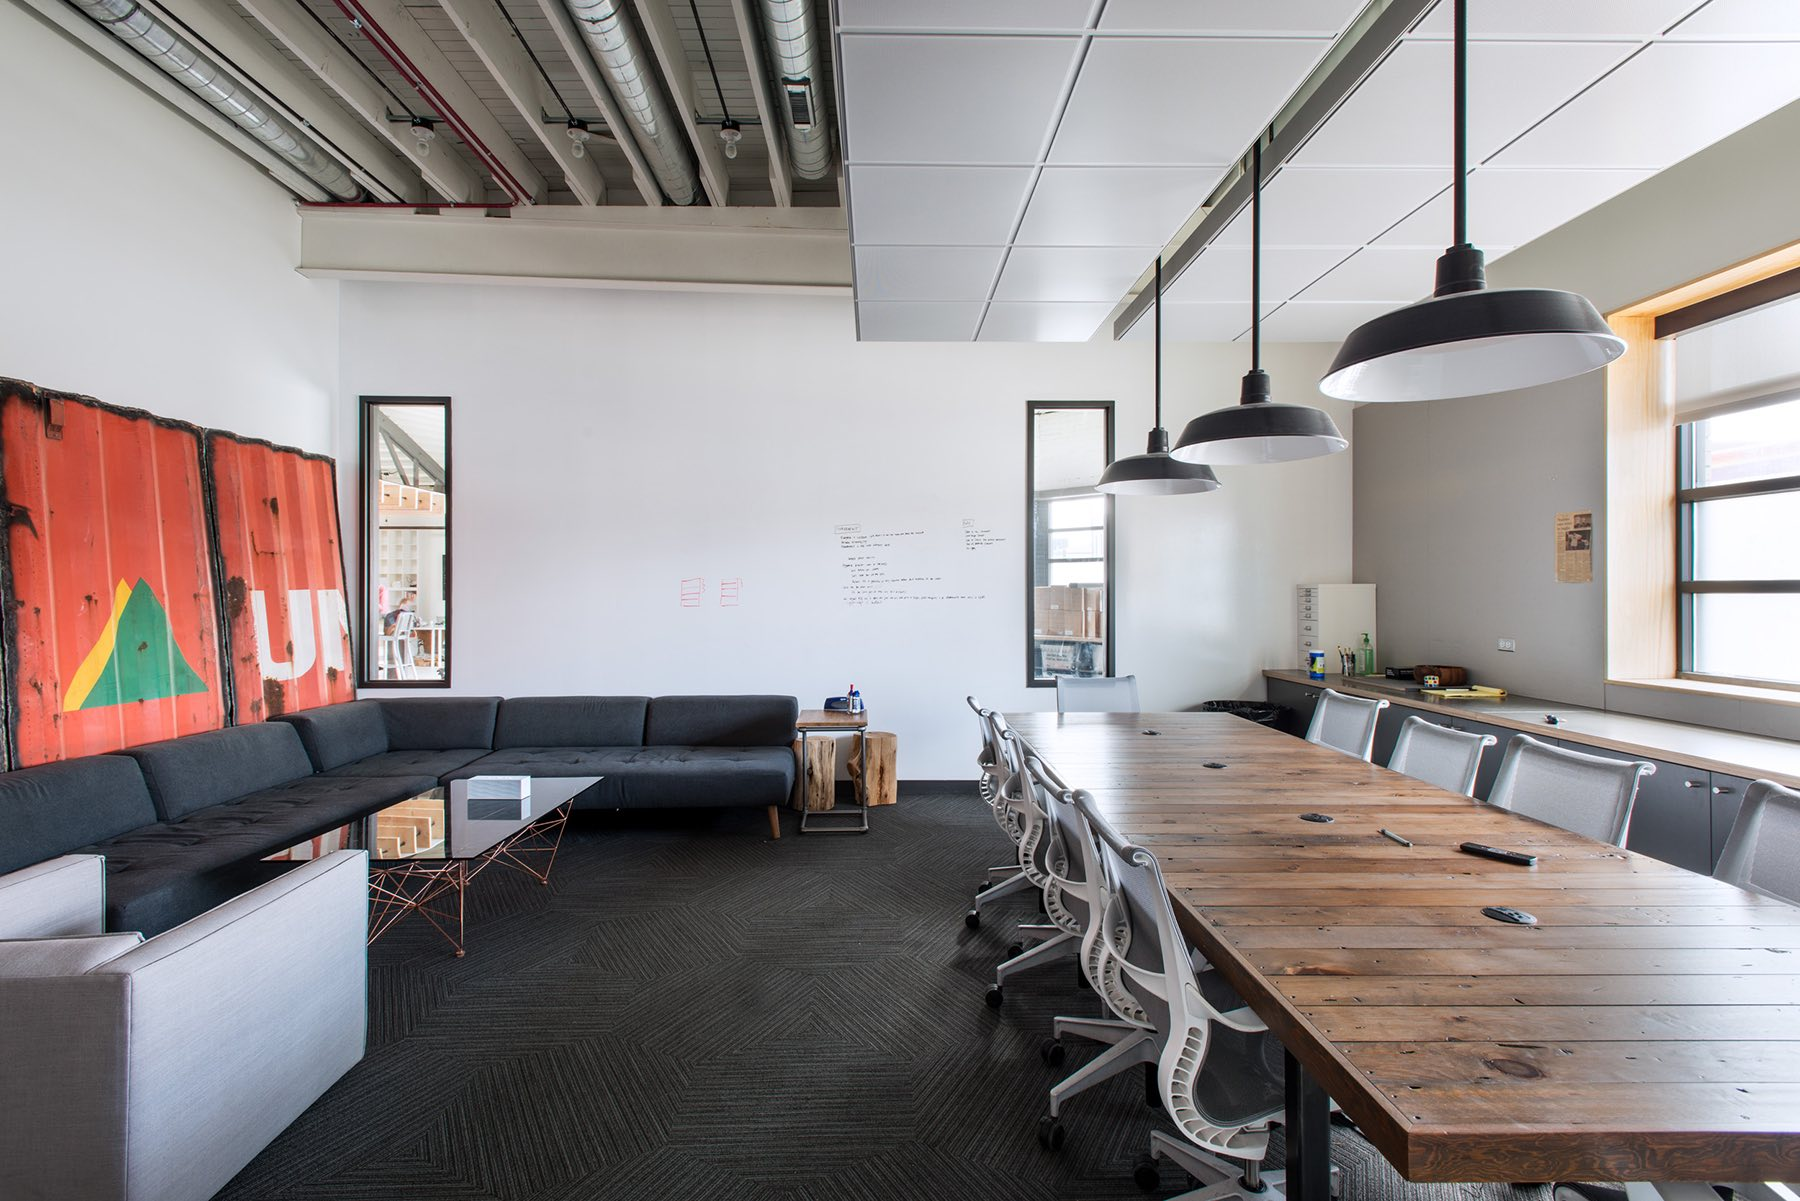 A Look Inside Cards Against Humanity's Chicago Office